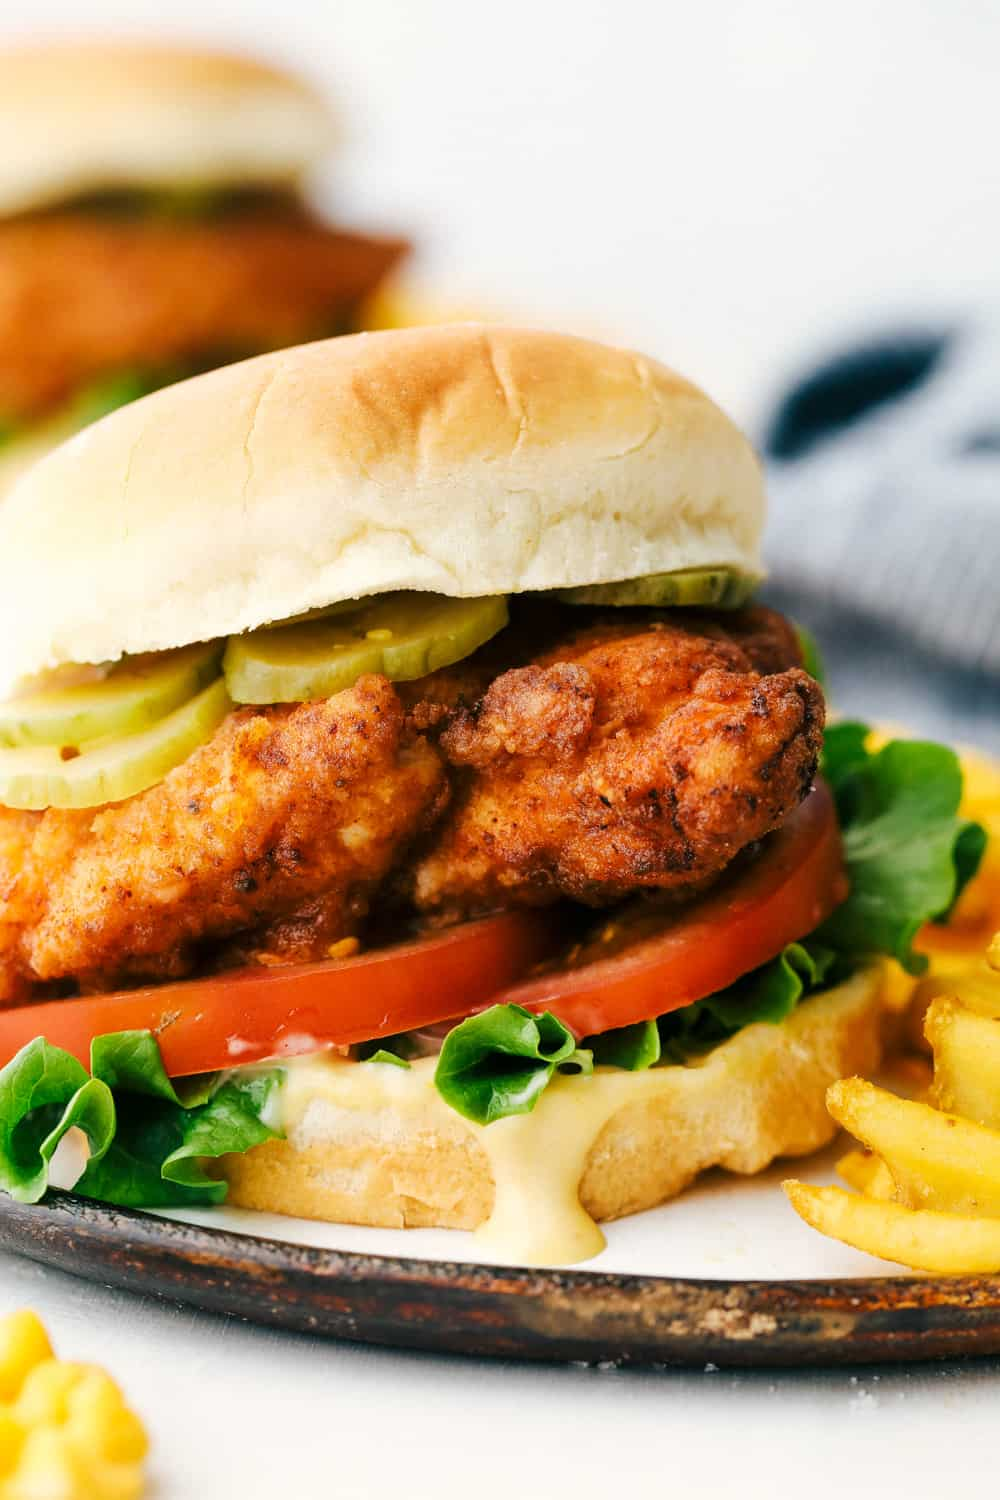 Chicken Sandwich with pickles and chick-fil-a sauce on a plate.